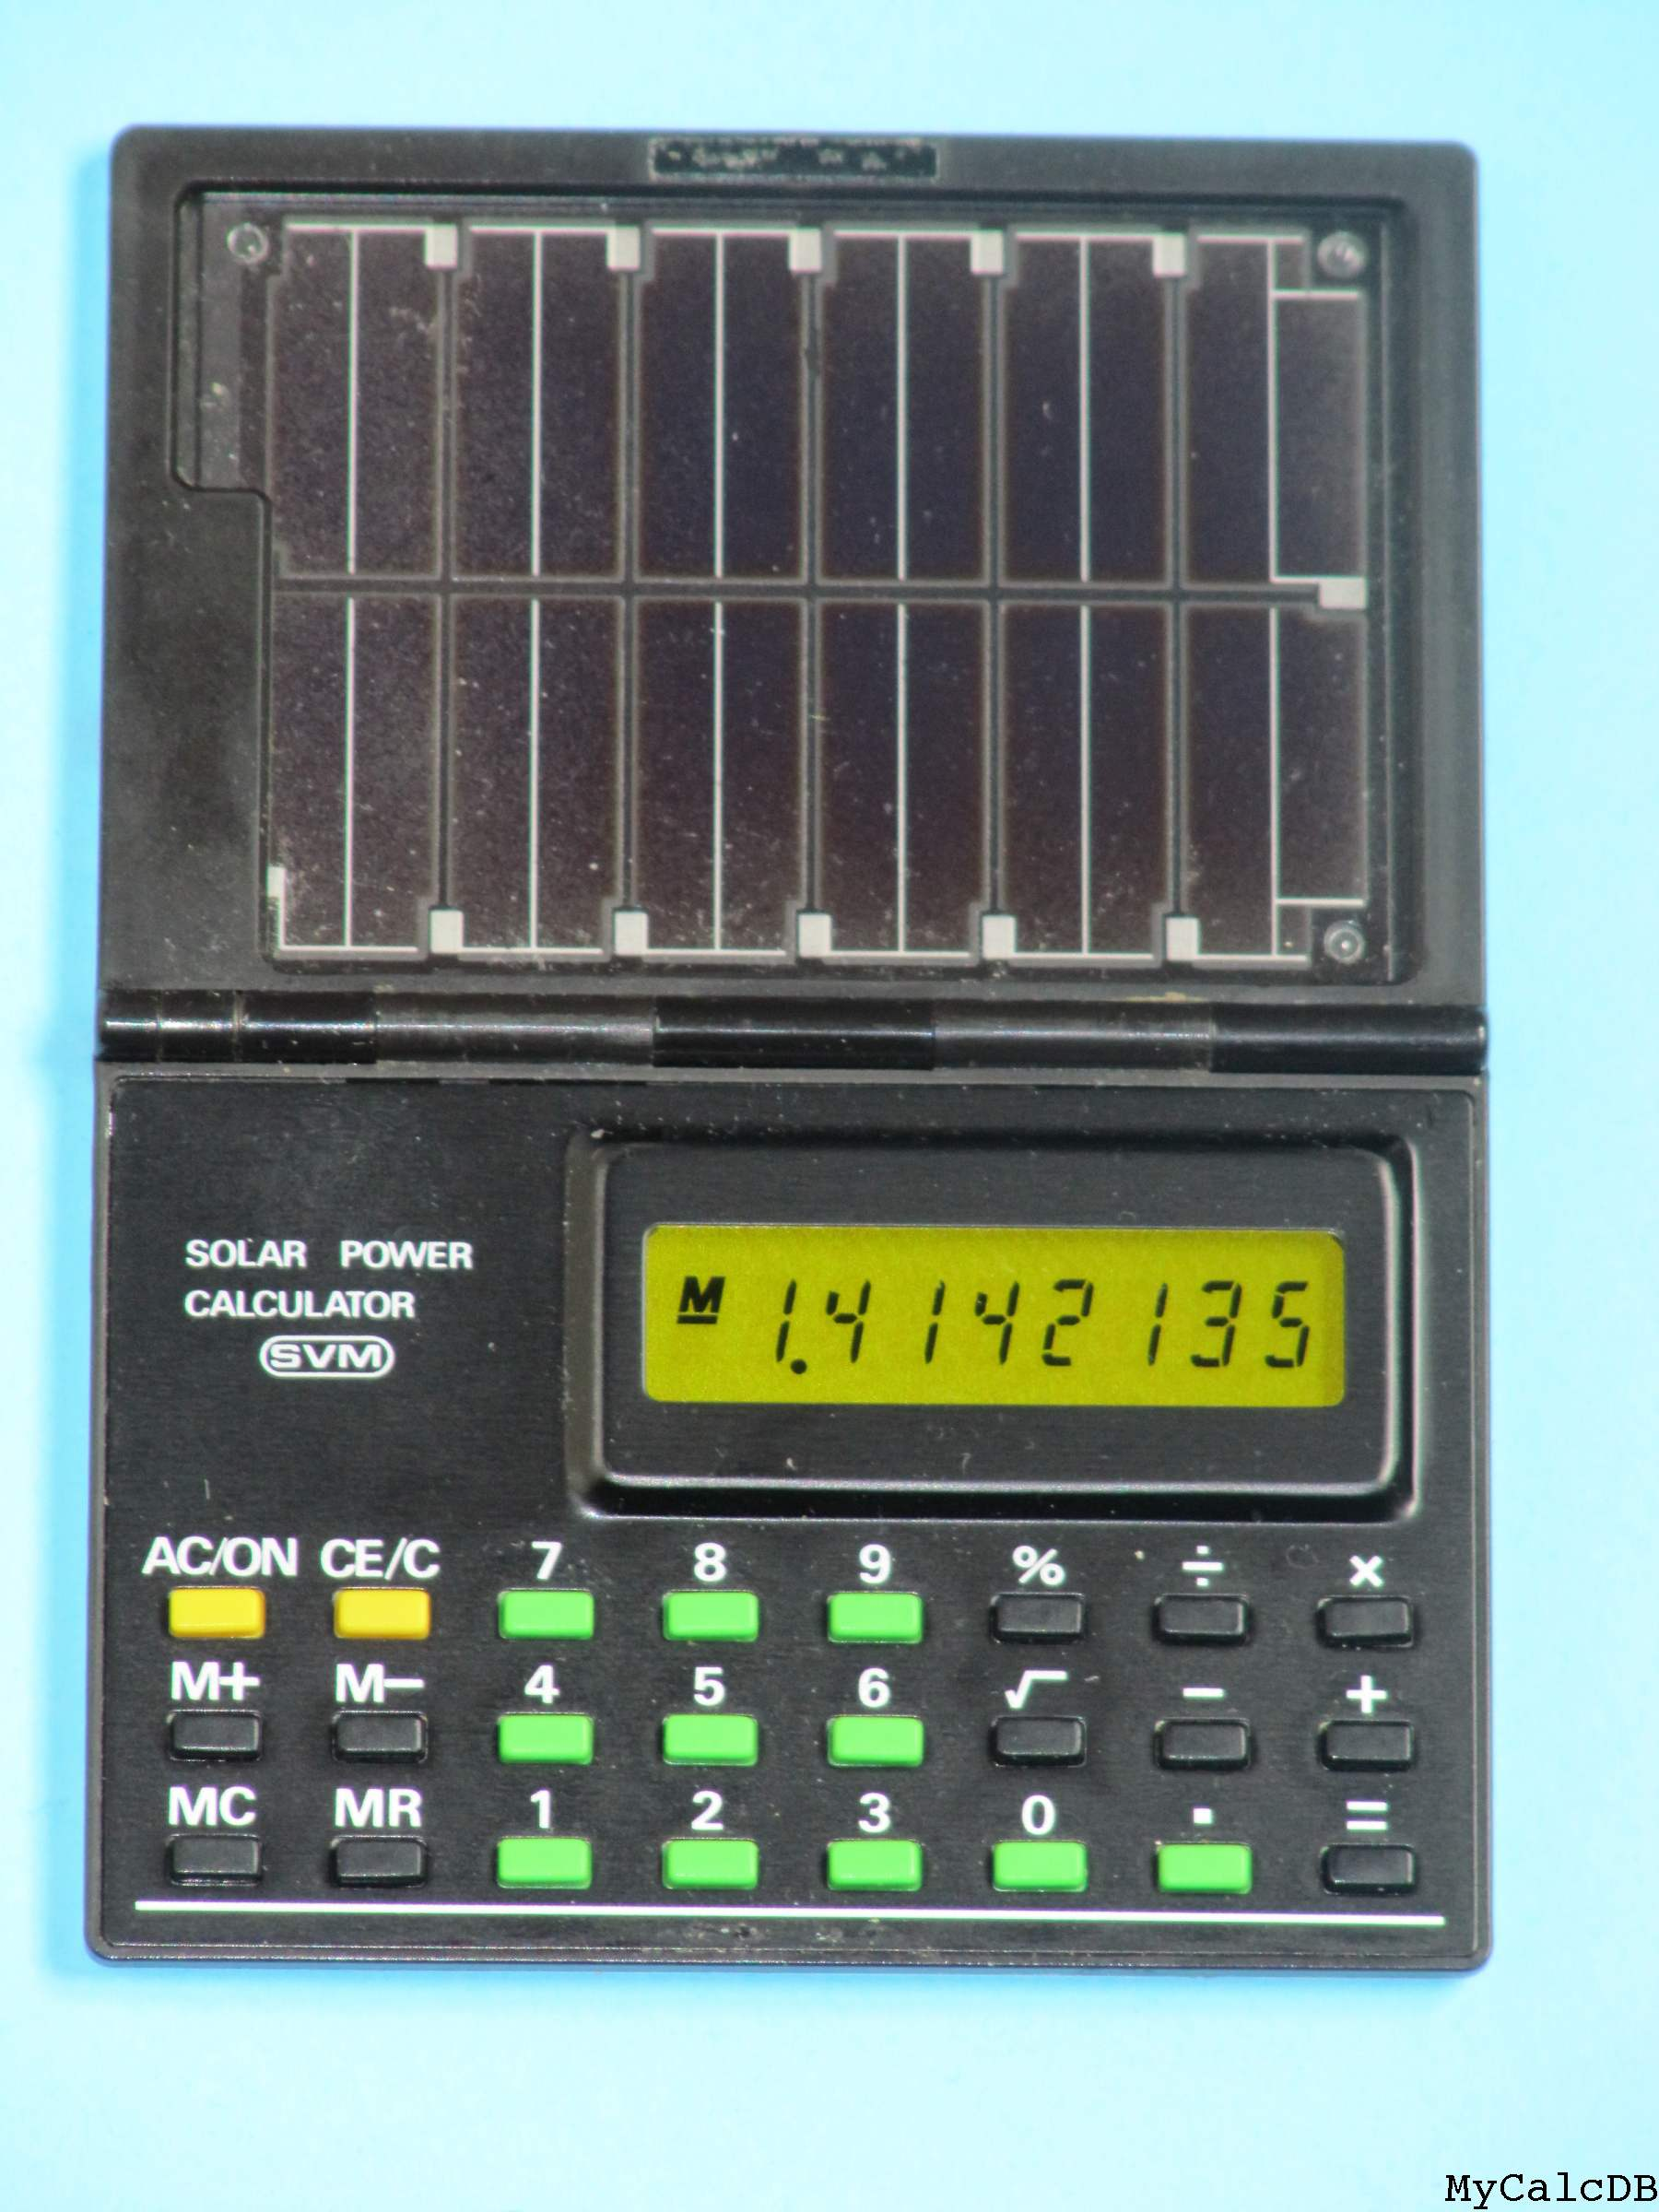 SVM SOLAR POWER CALCULATOR